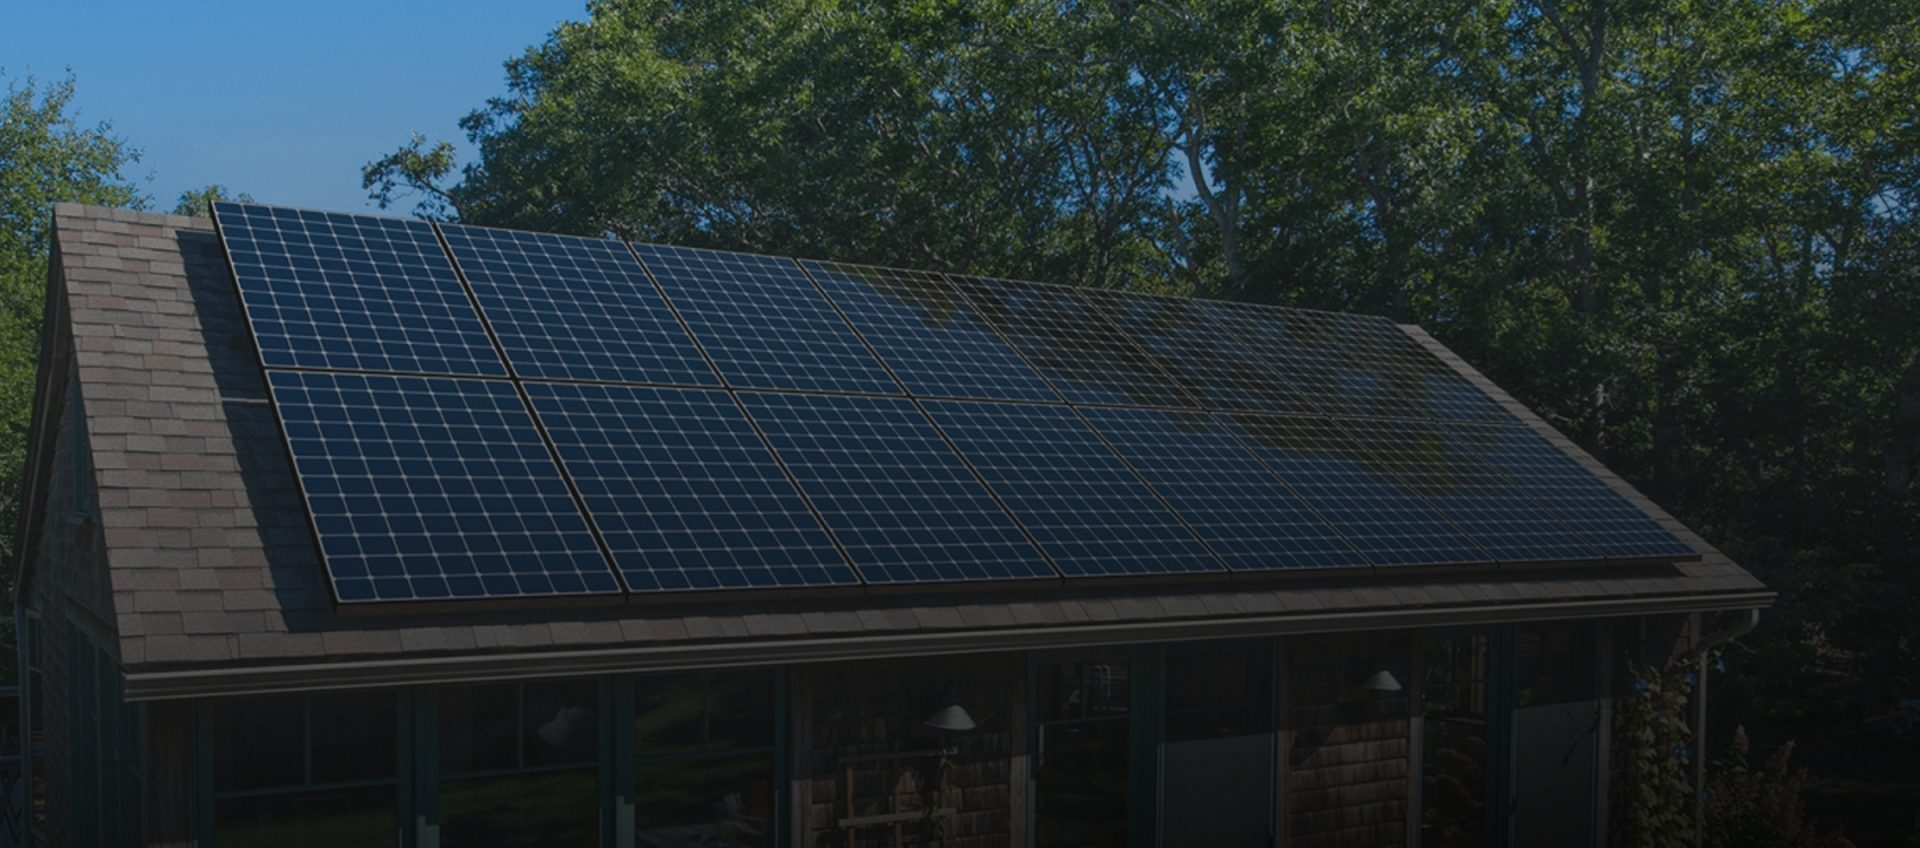 picture of home containing solar panels on the roof